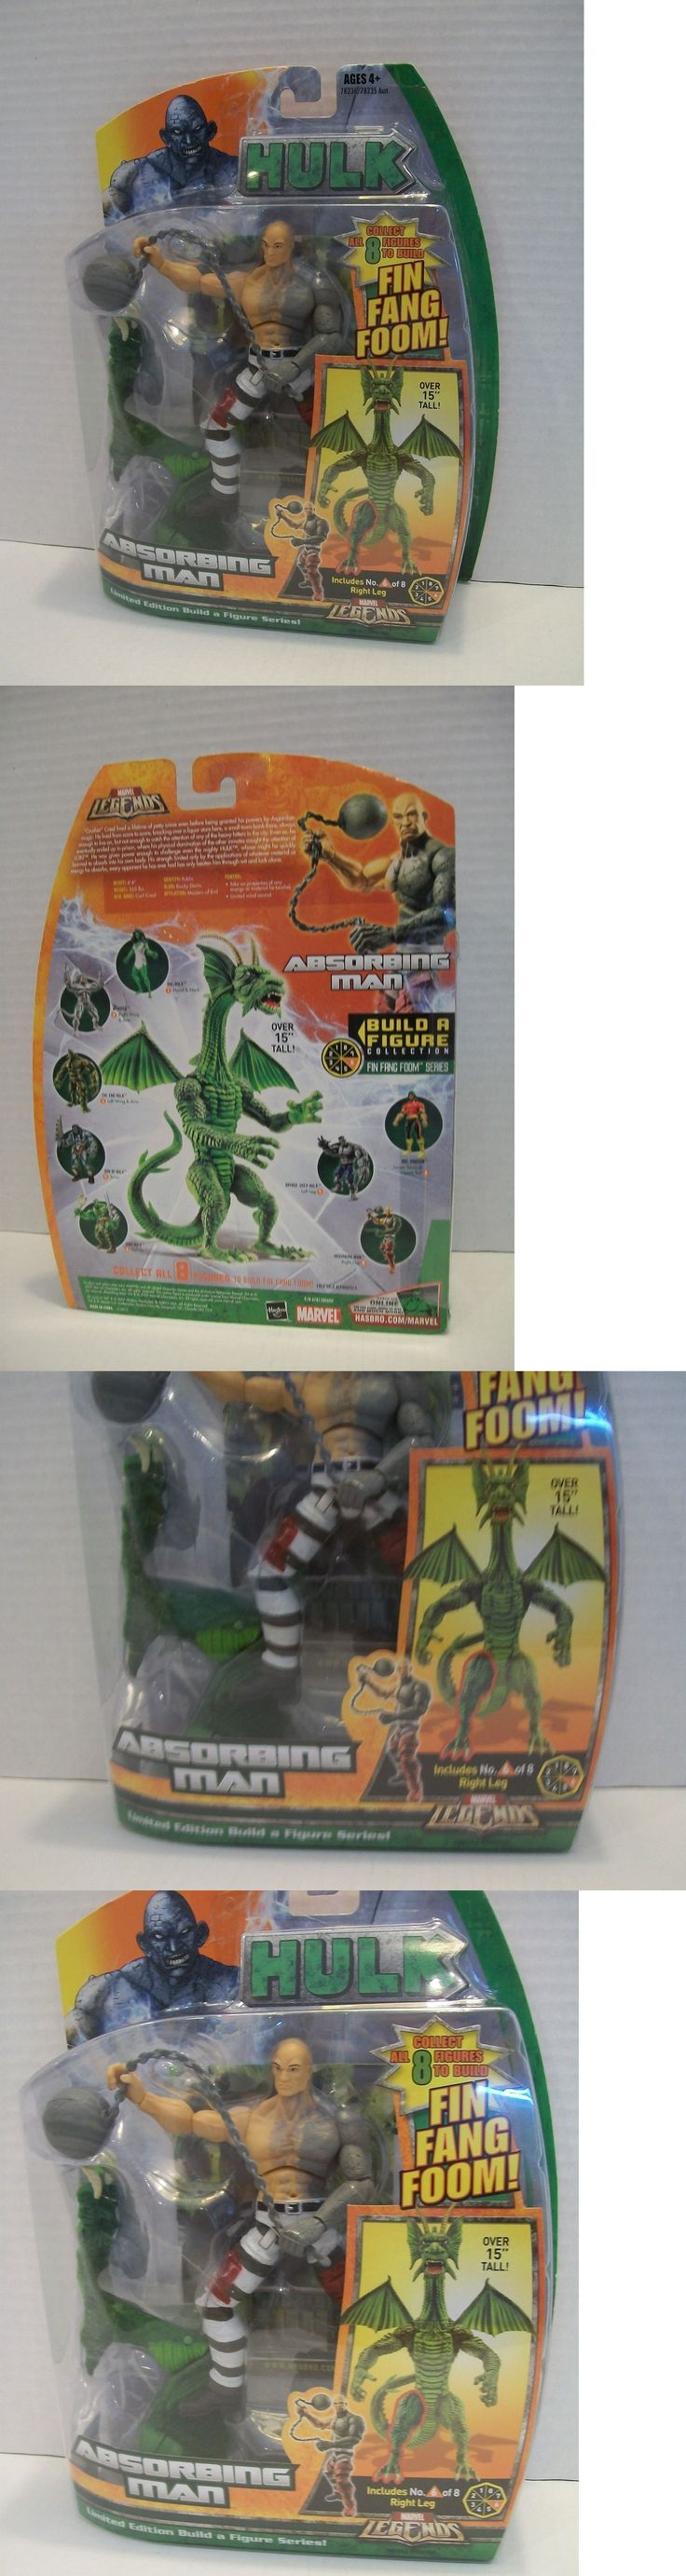 Action Figures 7114: Marvel Legends Absorbing Man Fin Fang Foom Baf Series Action Figure -> BUY IT NOW ONLY: $49.95 on eBay!